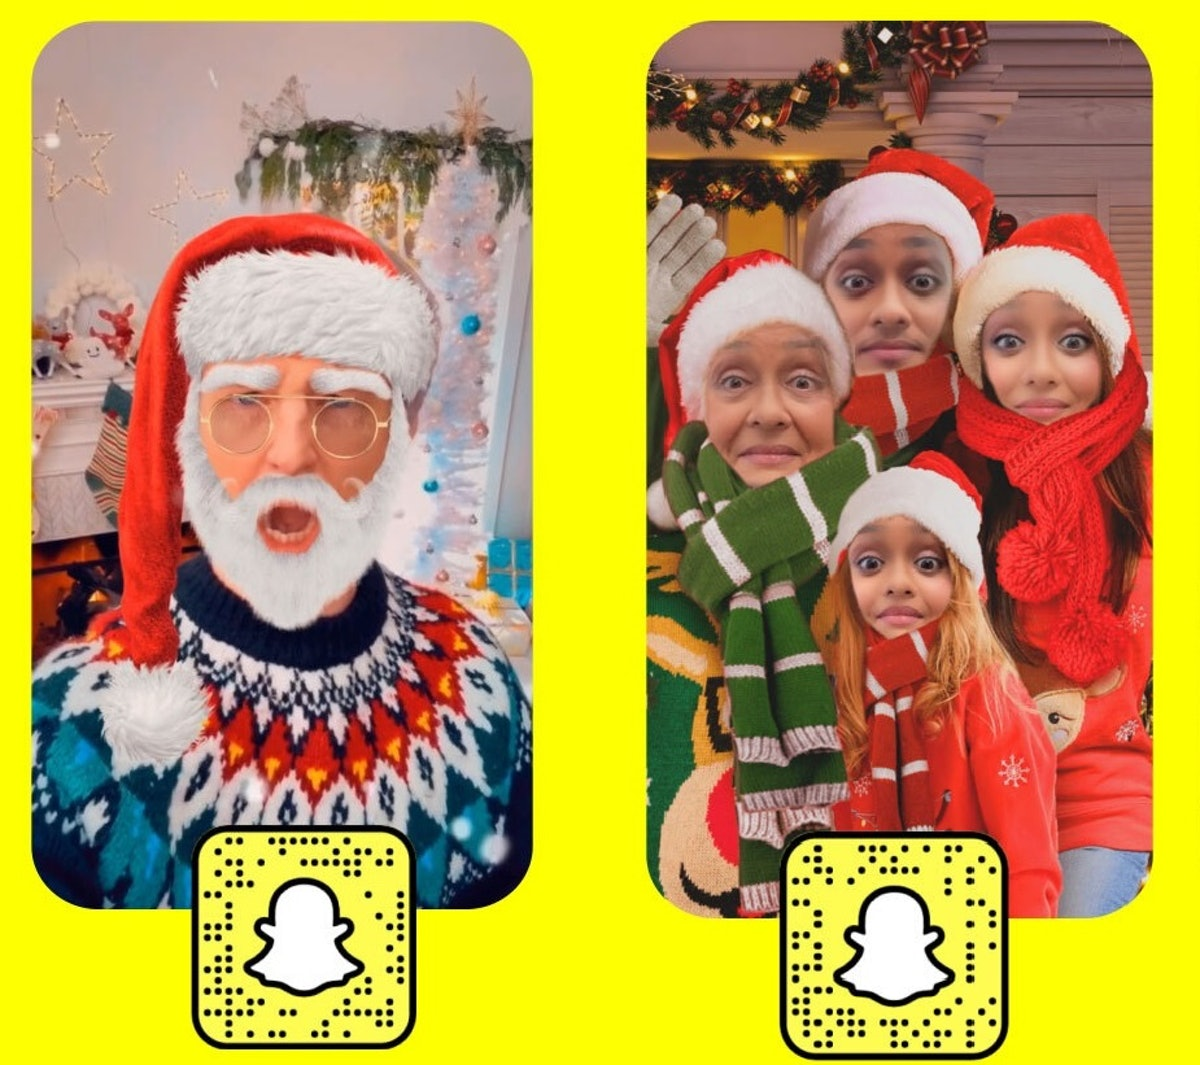 Here's where to find Snapchat's holiday 2020 lenses to start sending updates.